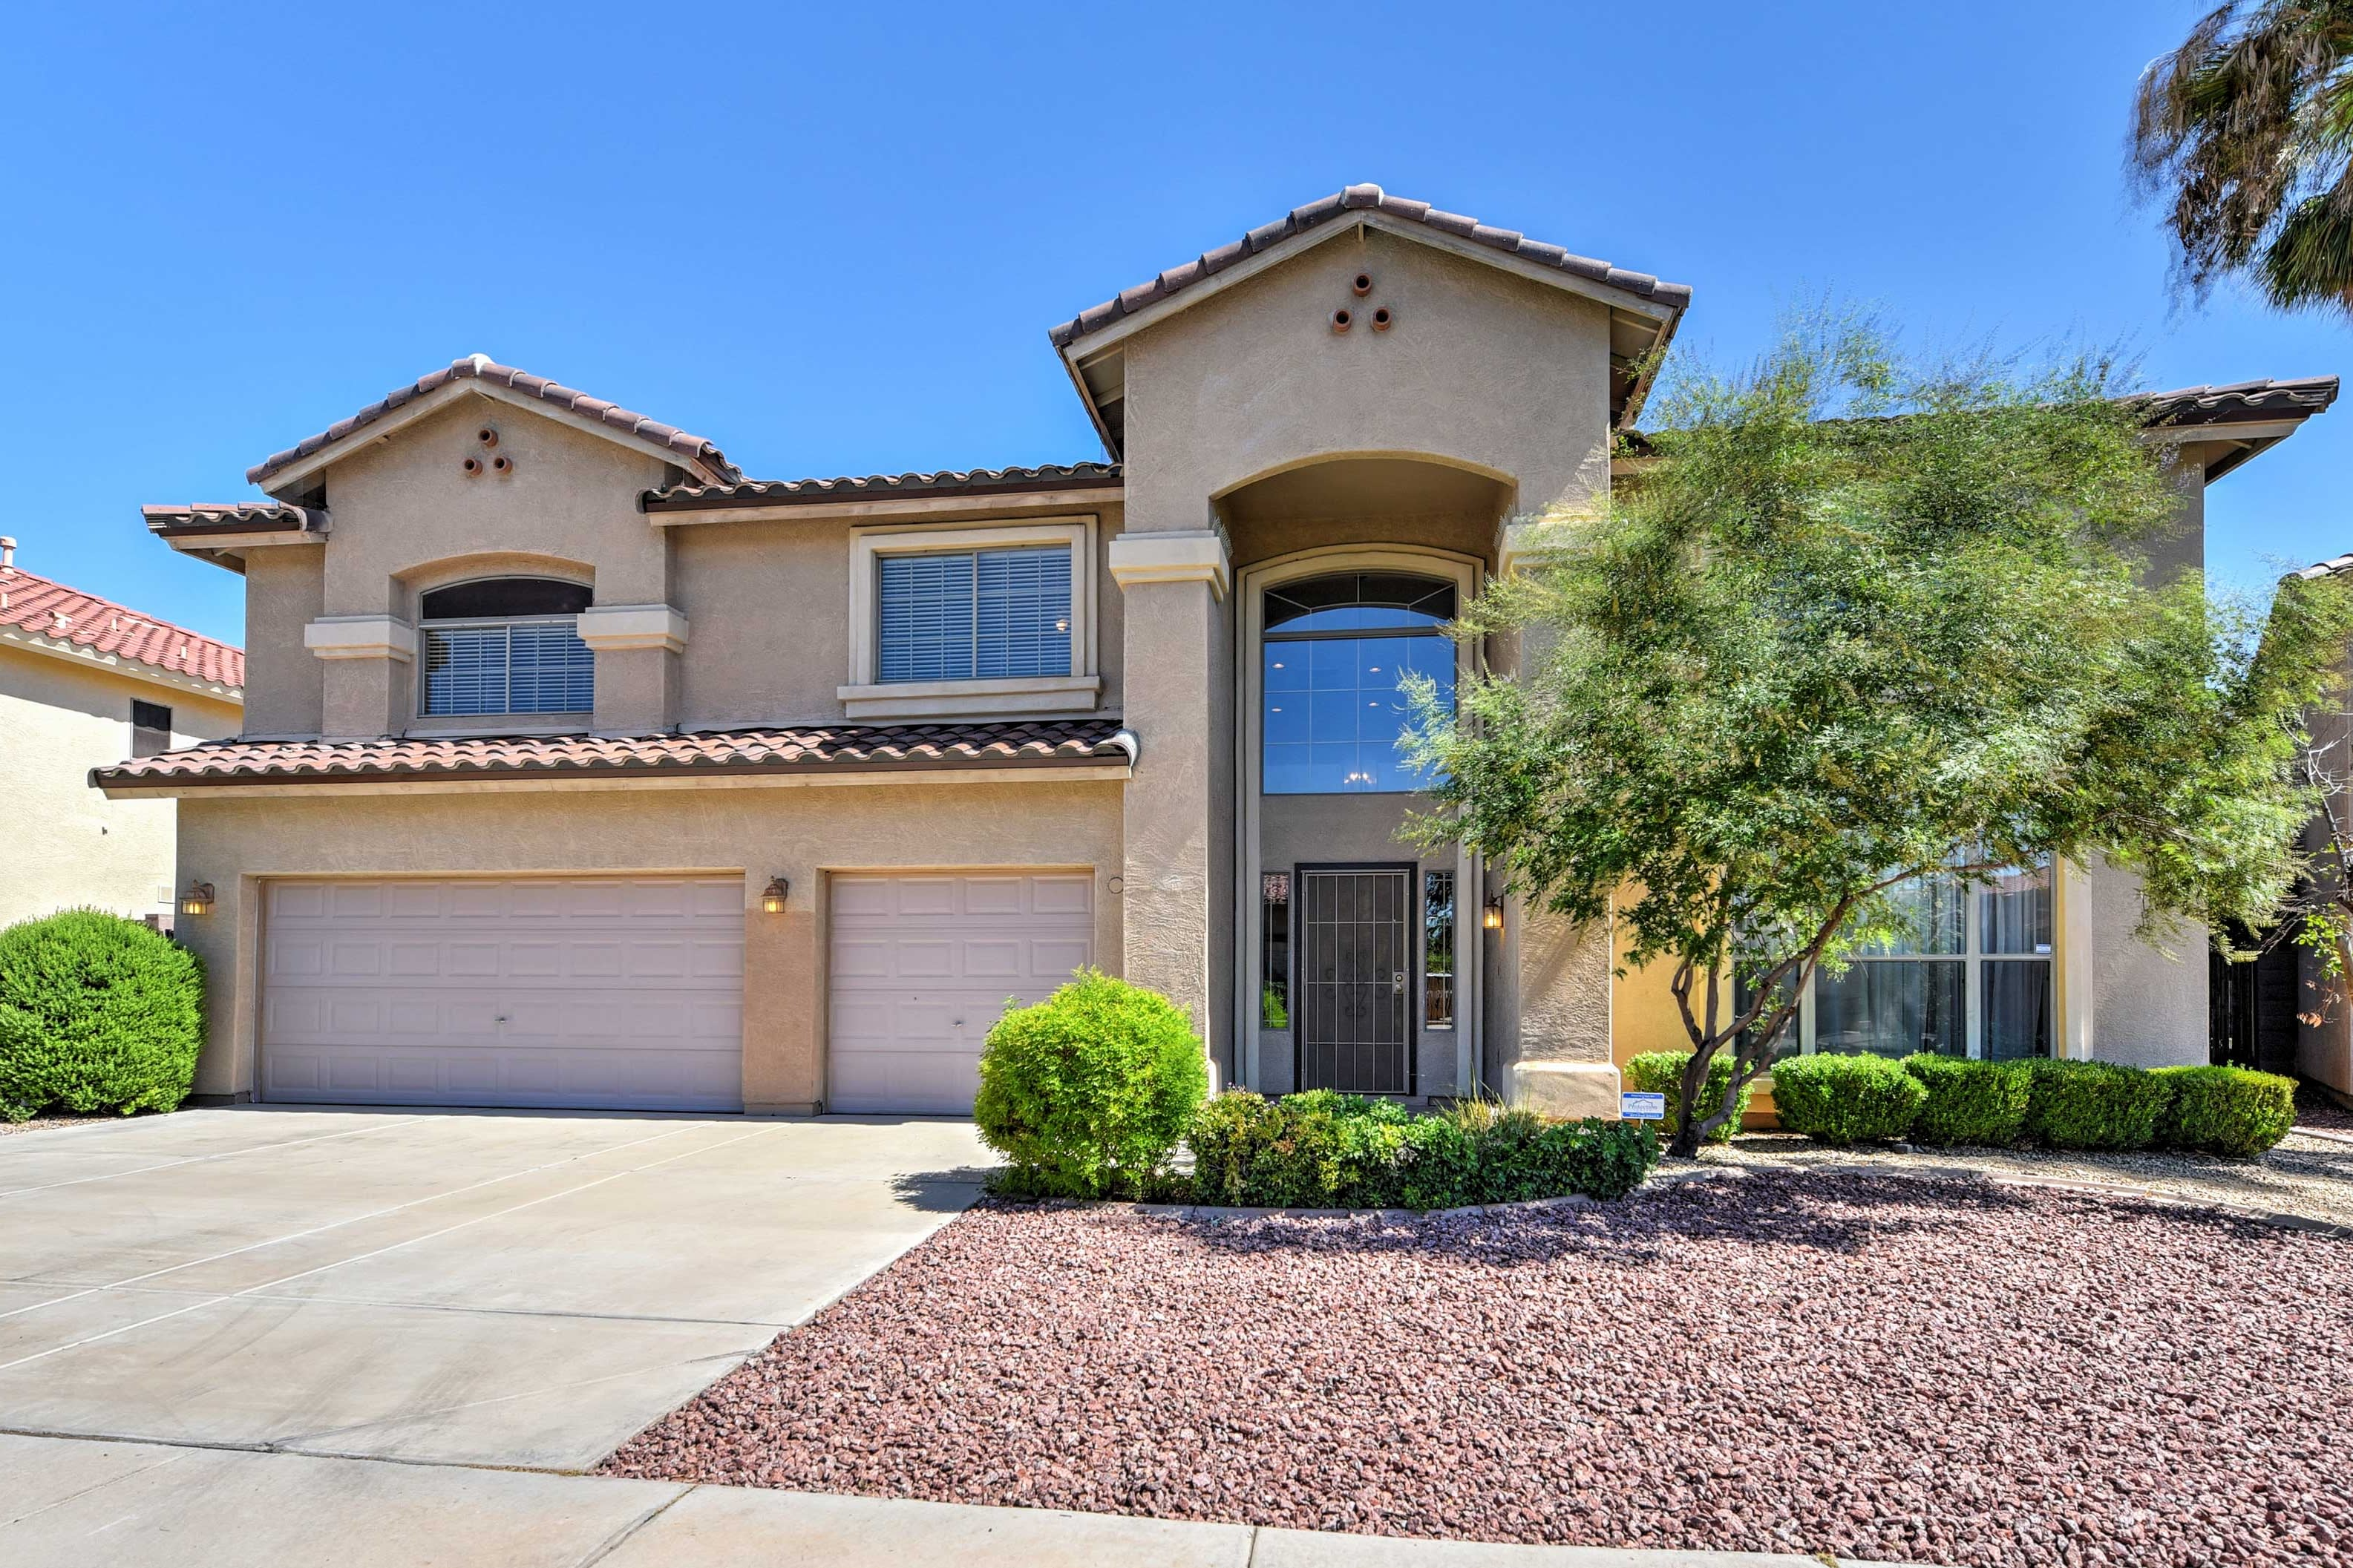 This home is minutes from many local attractions!